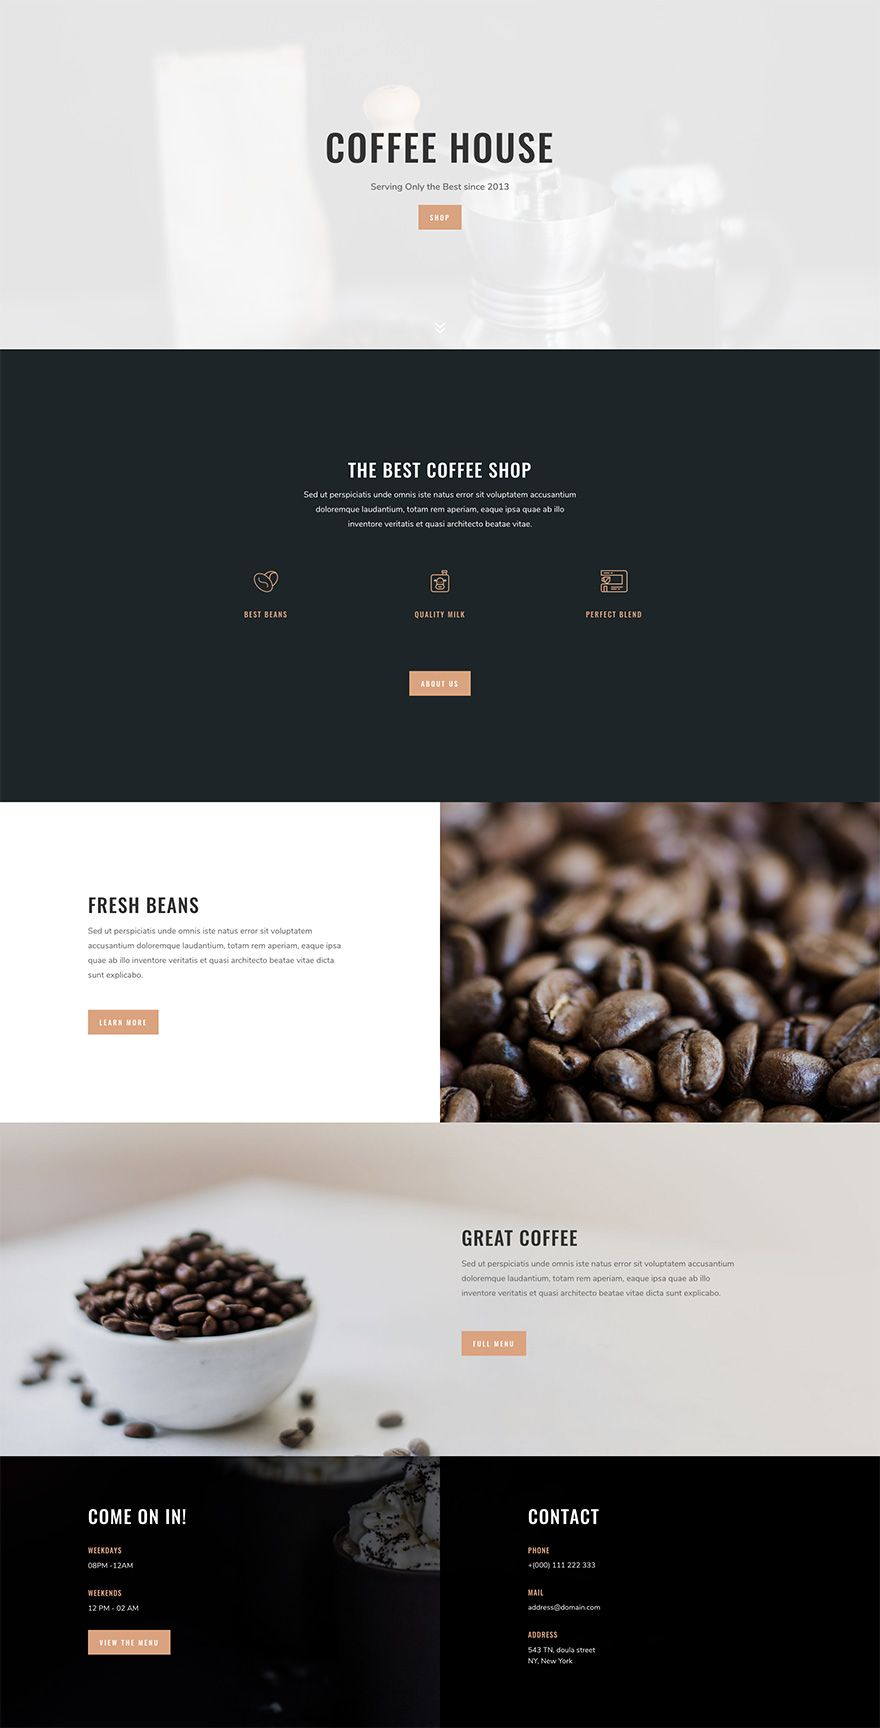 Download A Tasty Free Coffee Shop Layout Pack For Divi Web Layout Design Wordpress Website Design Coffee Shop